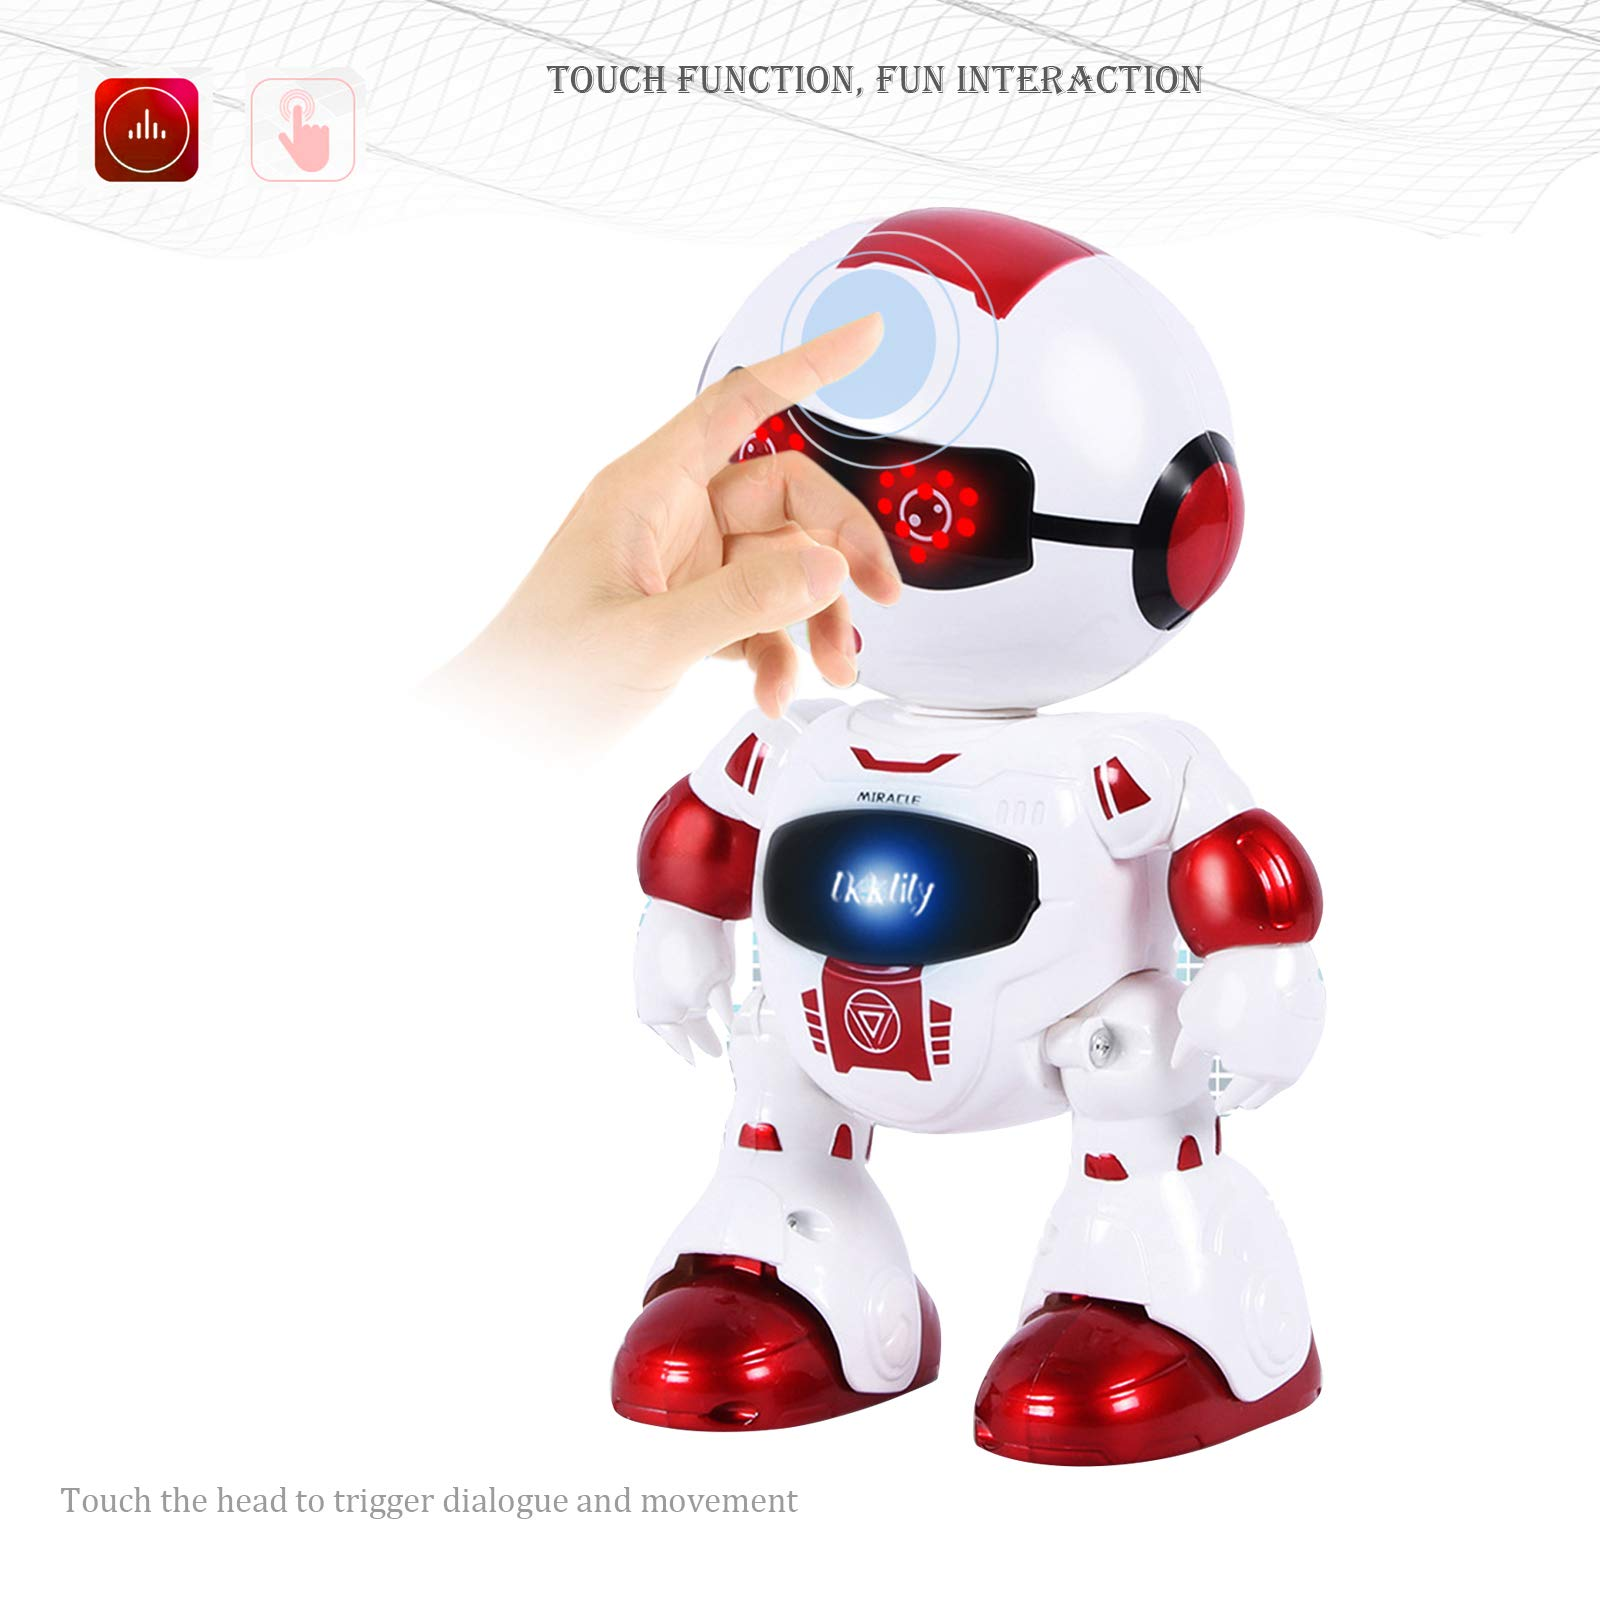 LKKLILY Remote Control Robot with Touch Interaction Music Dance and Lights Remote Toy for Children Kids and Kids Gifts (Red) by LKKLILY (Image #3)